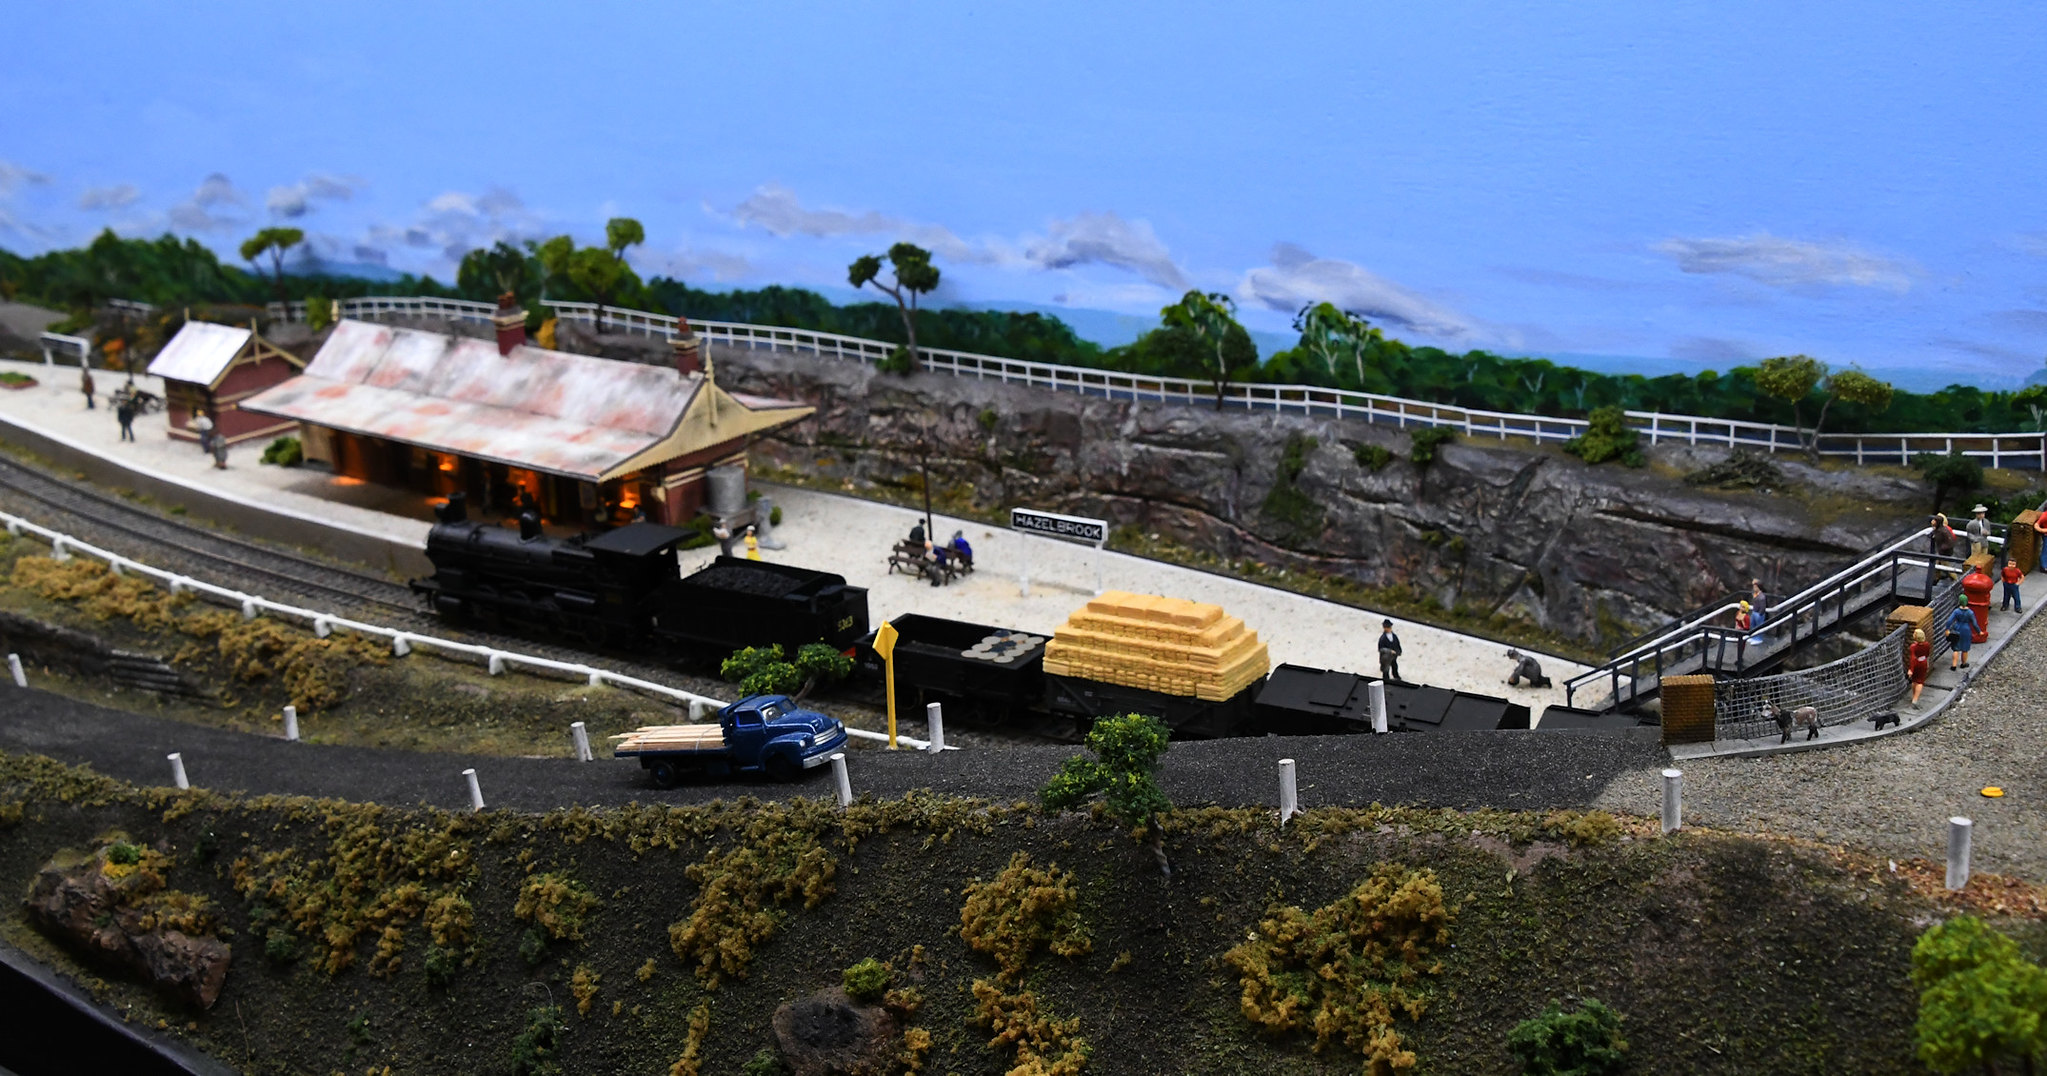 Blue Mountains Layout, Epping Model Railway Exhibition, Rosehill, Sydney, NSW.